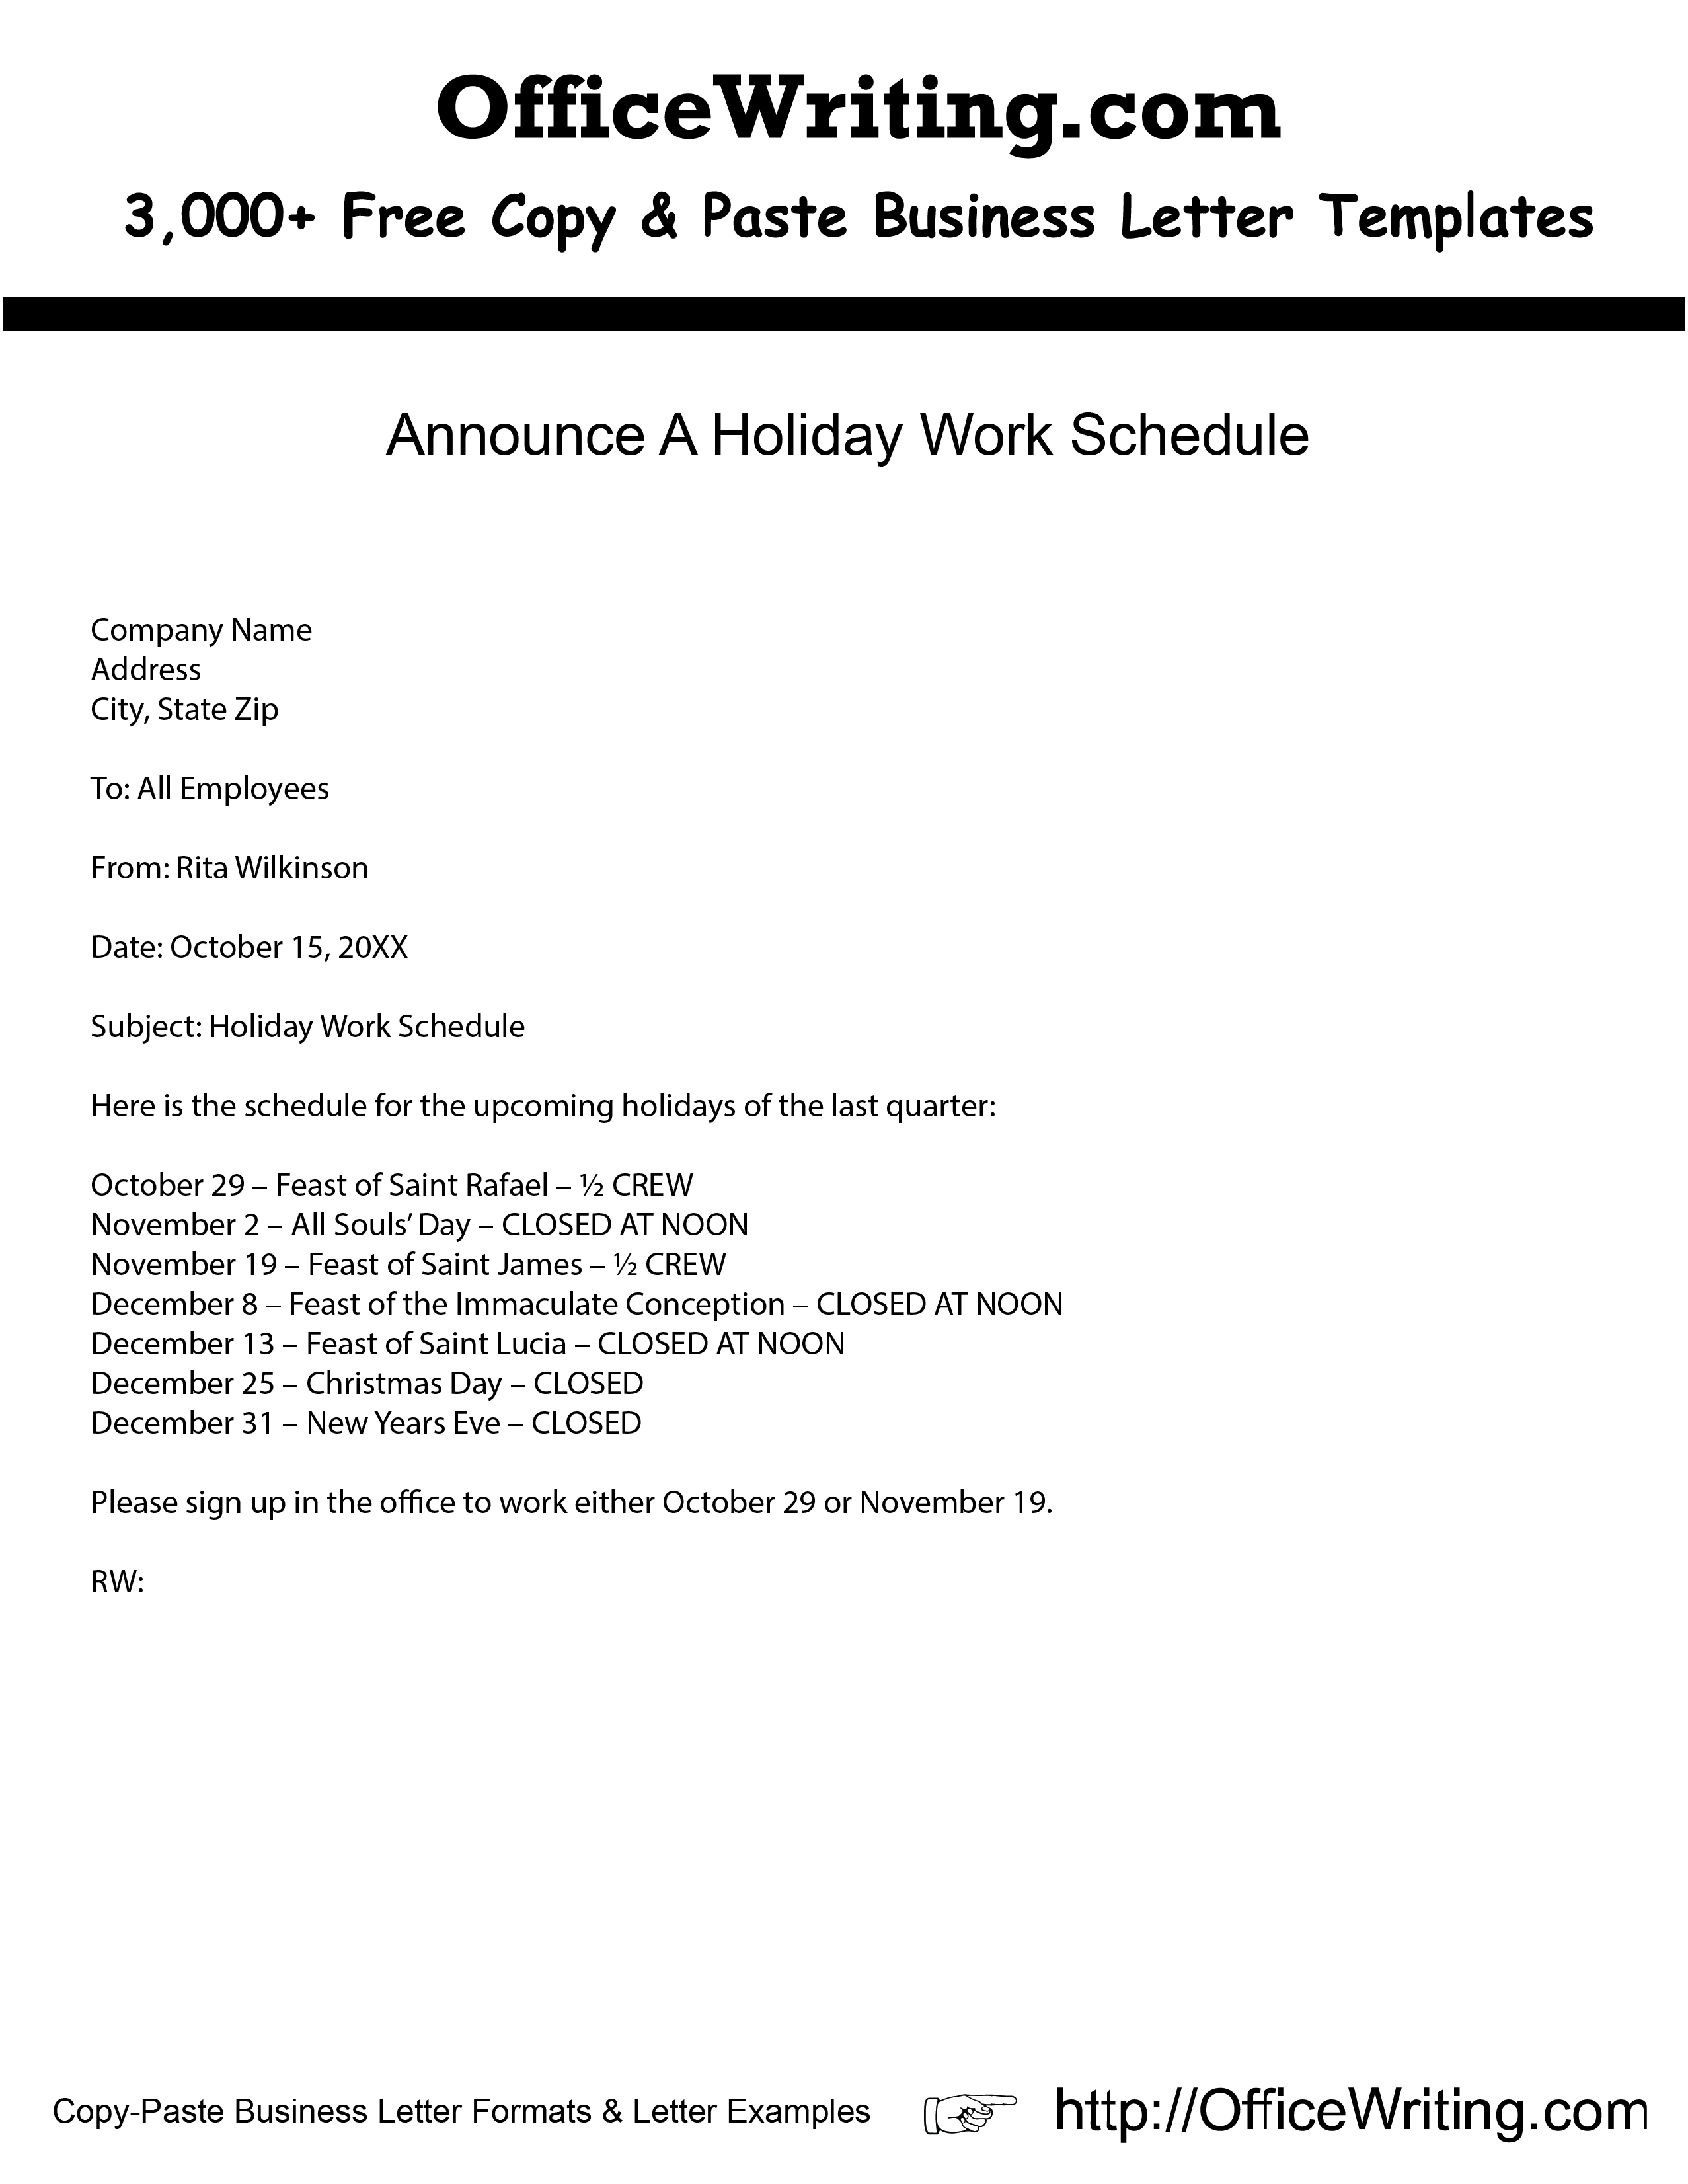 Announce A Holiday Work Schedule We have over 3,000